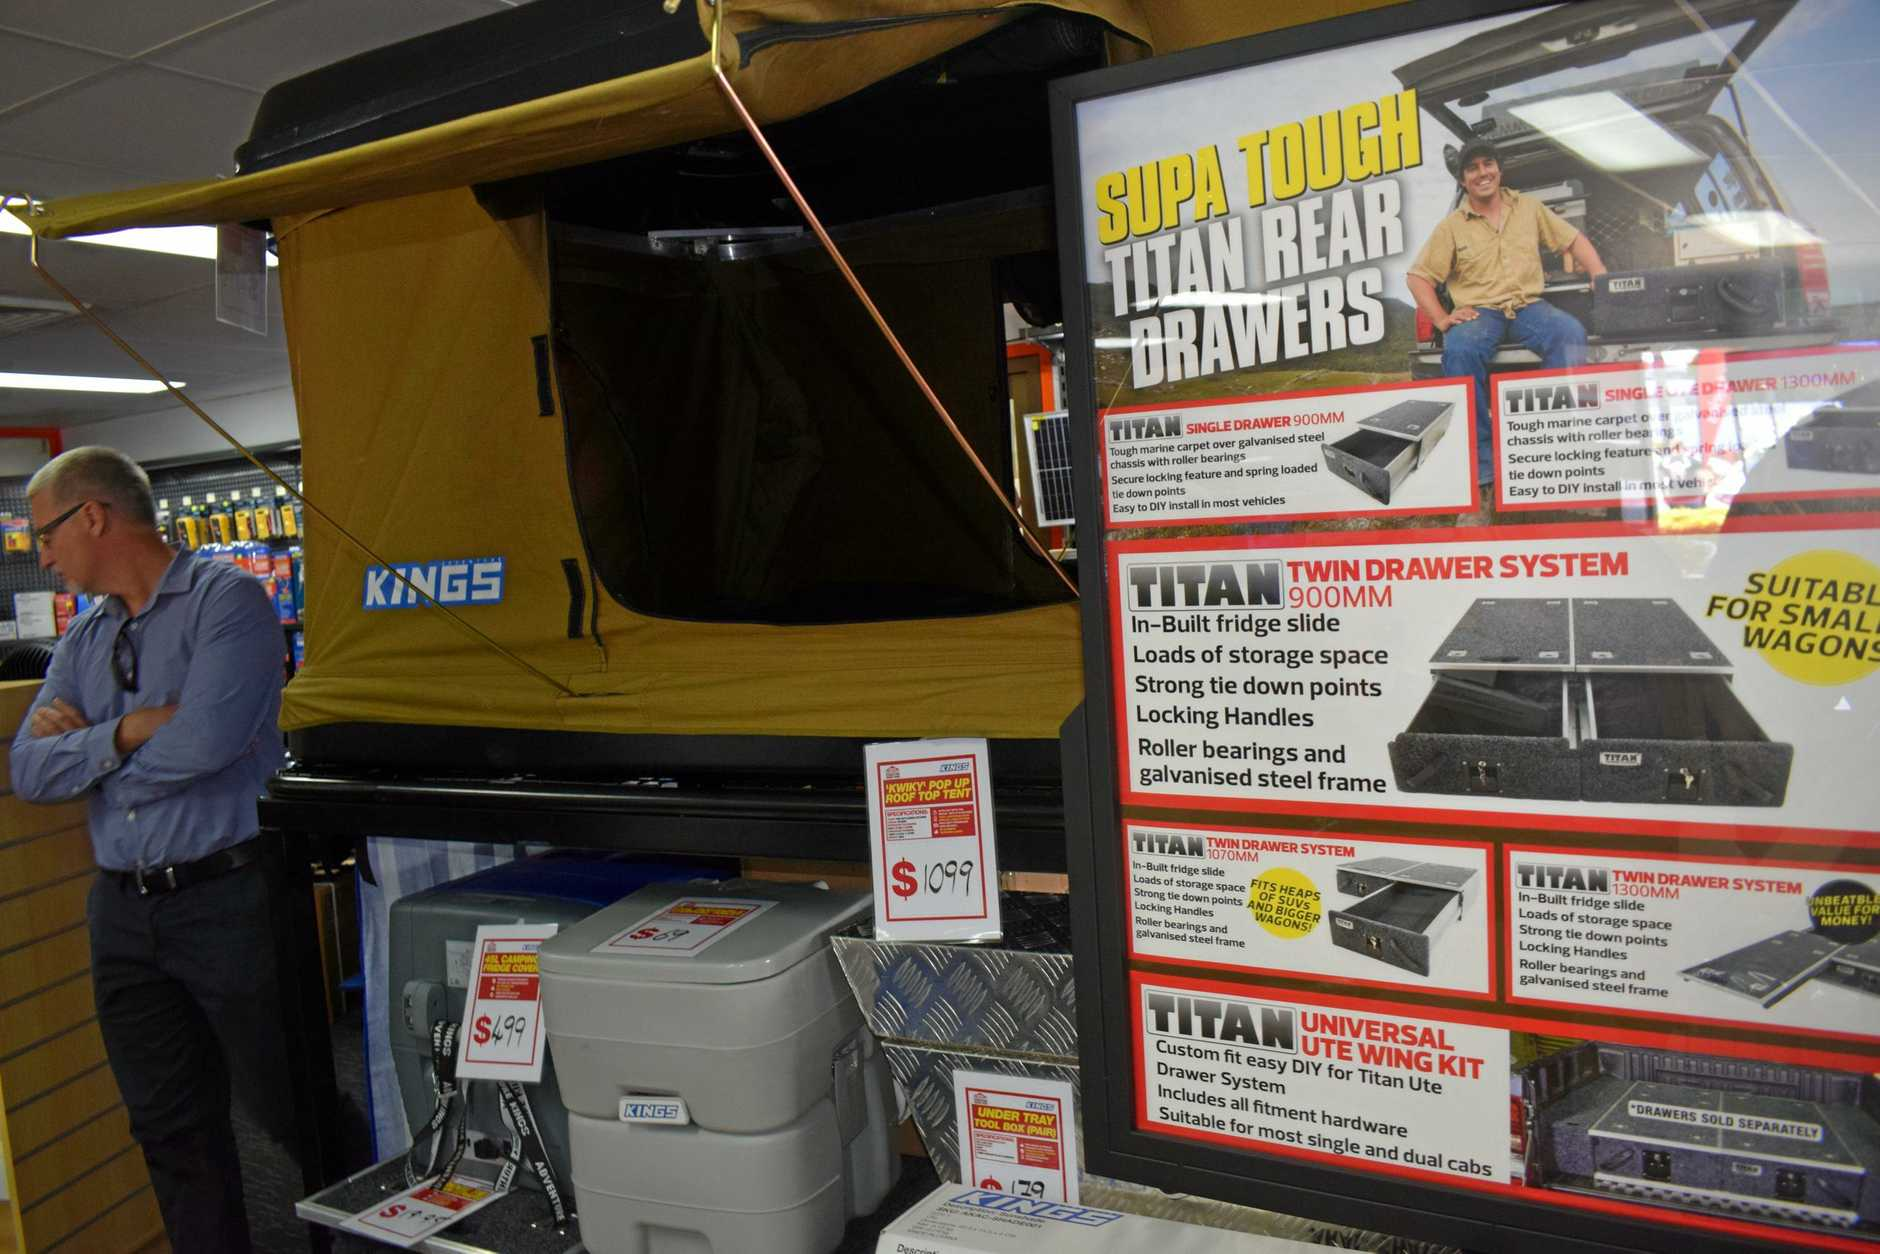 Customers admire the new Adventure Kings product range including this item.